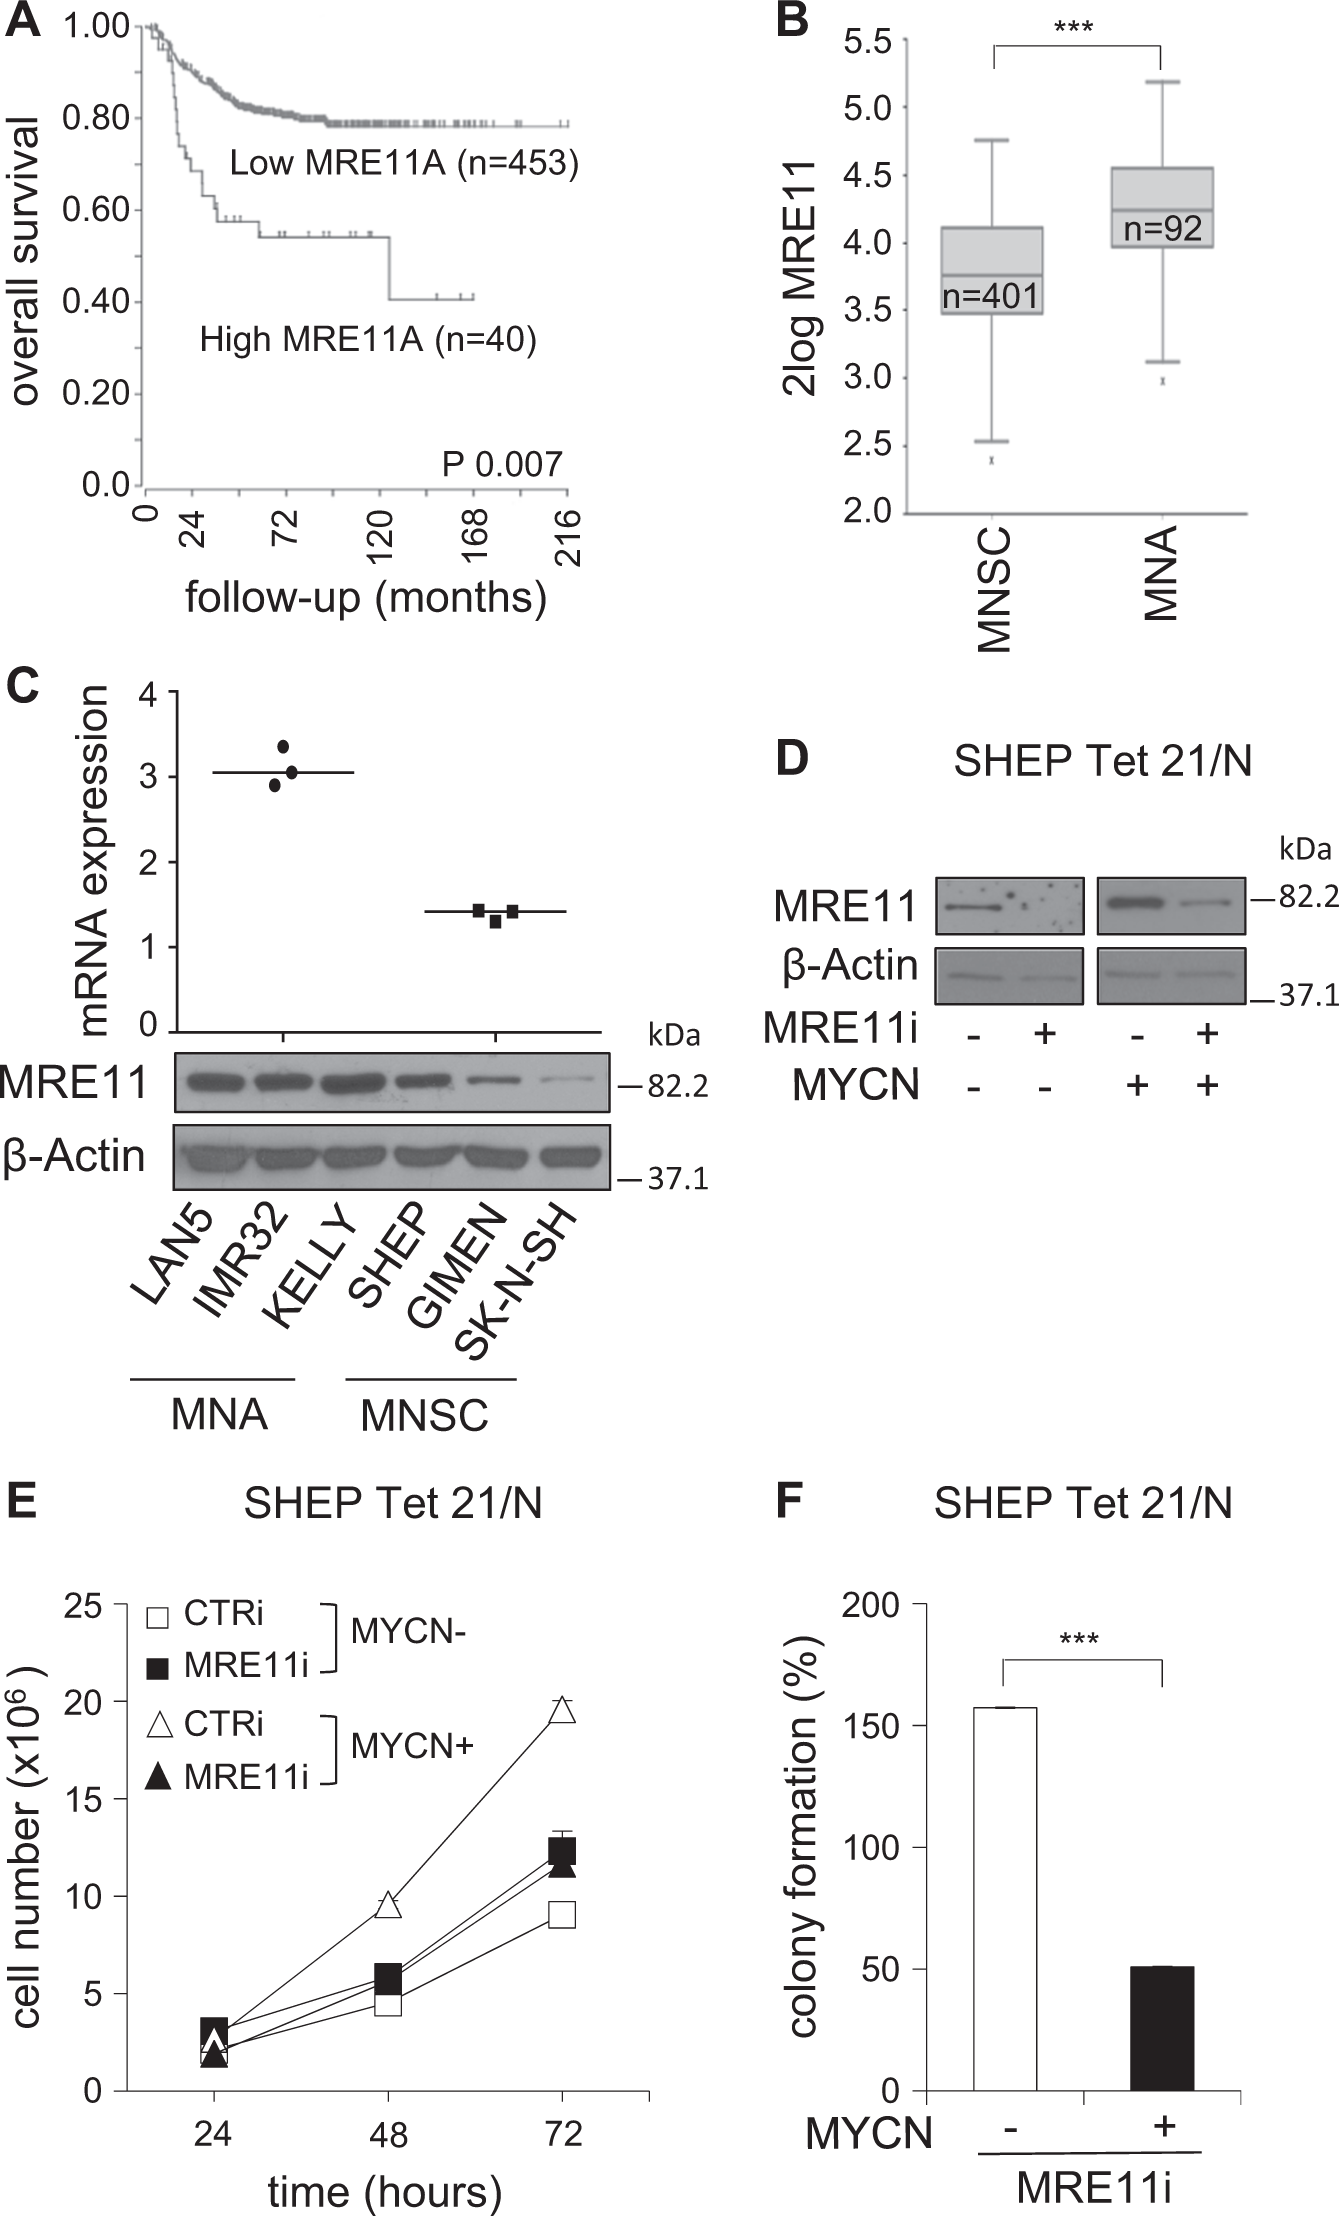 Mre11 Inhibition Highlights A Replication Stress Dependent Scytek Schematic Vulnerability Of Mycn Driven Tumors Cell Death Disease